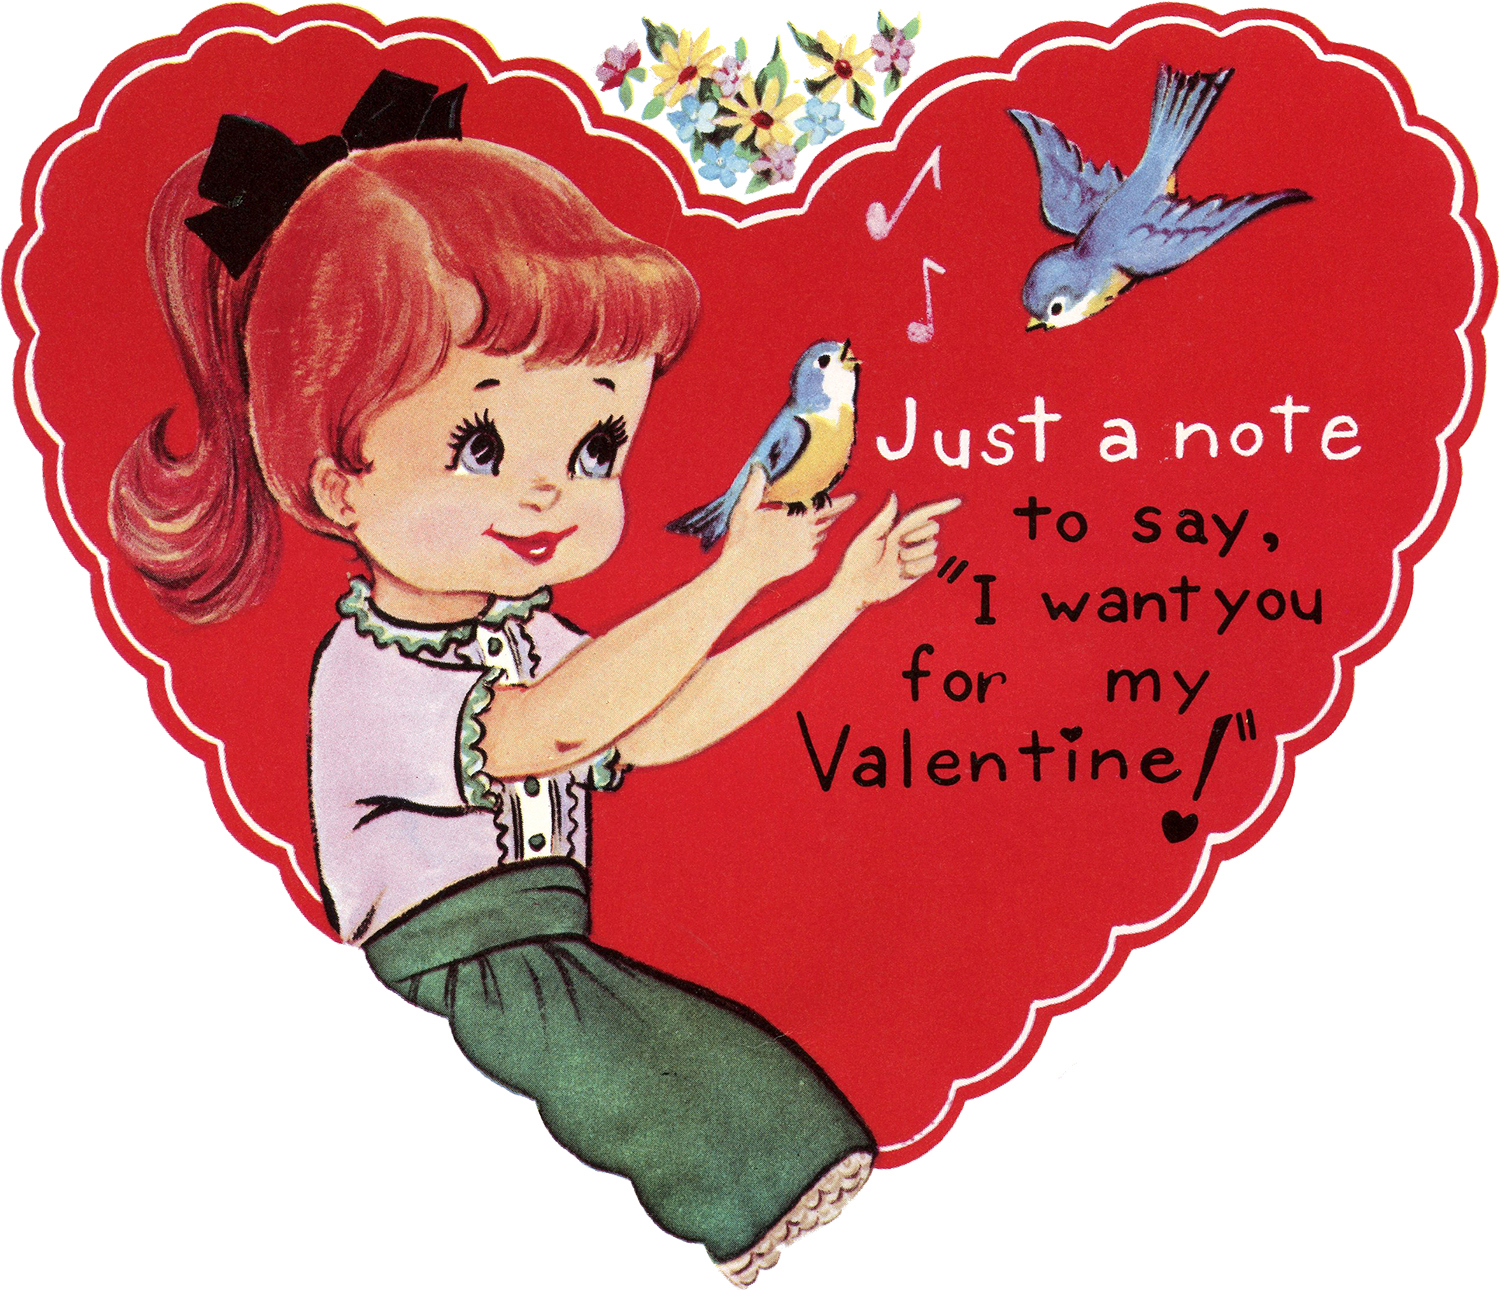 Retro Valentine Heart Image - Girl with Bluebirds - The Graphics Fairy